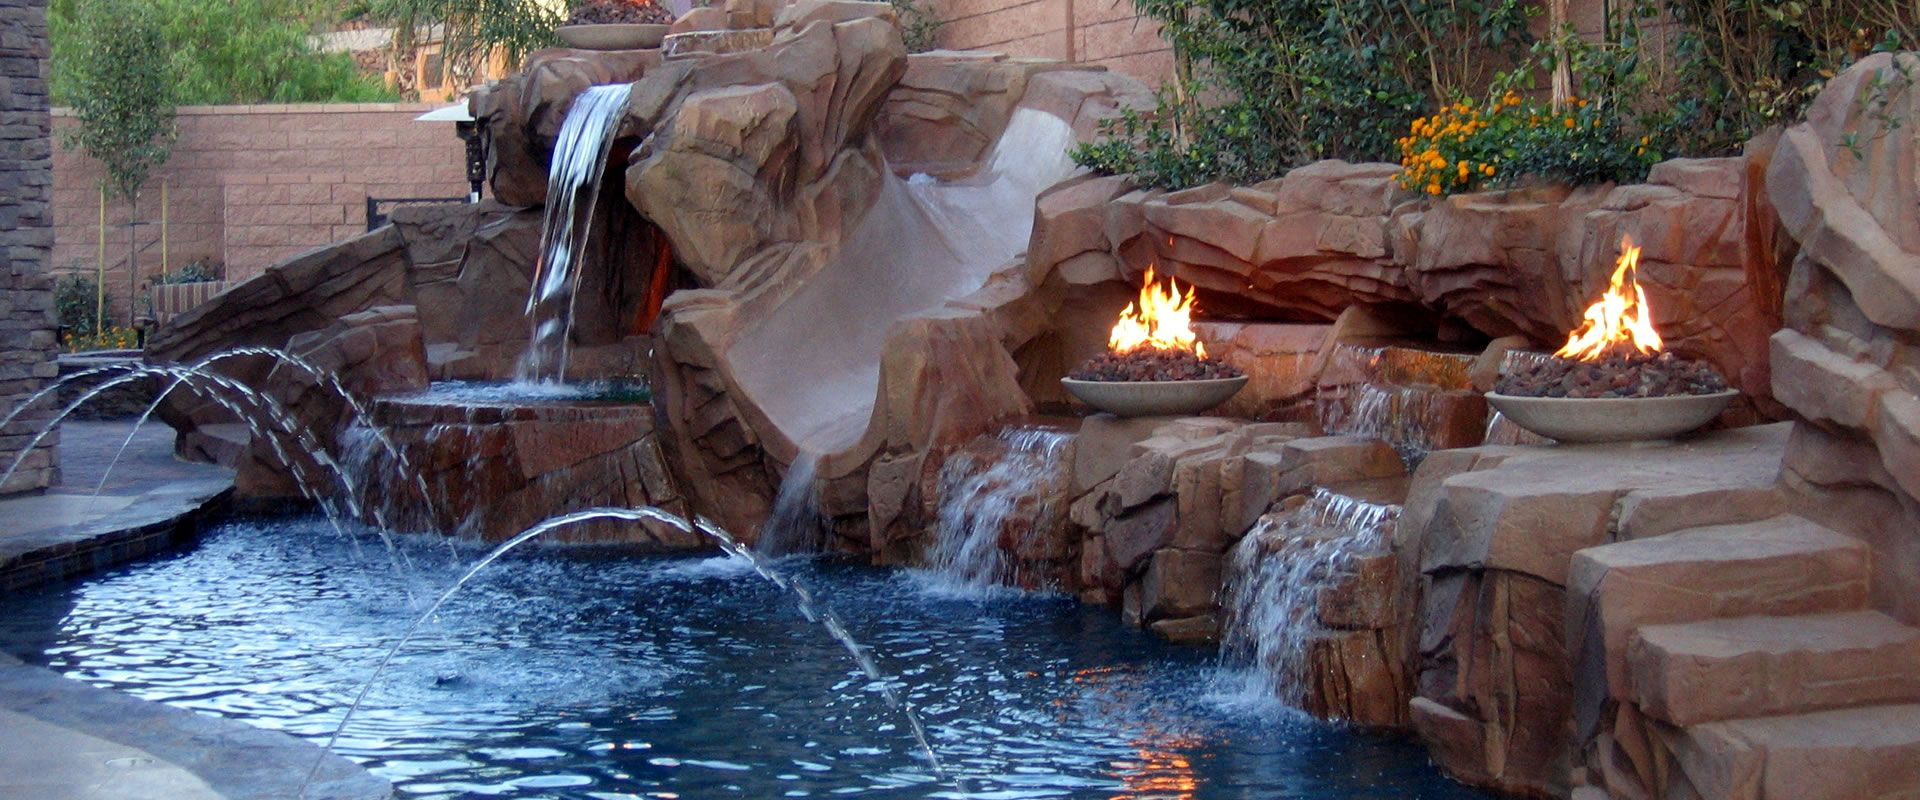 Fire By Design Remote Control Module For Outdoor Firepits Outdoor Custom Fire Features Pool Fire Features Fire On Water Features